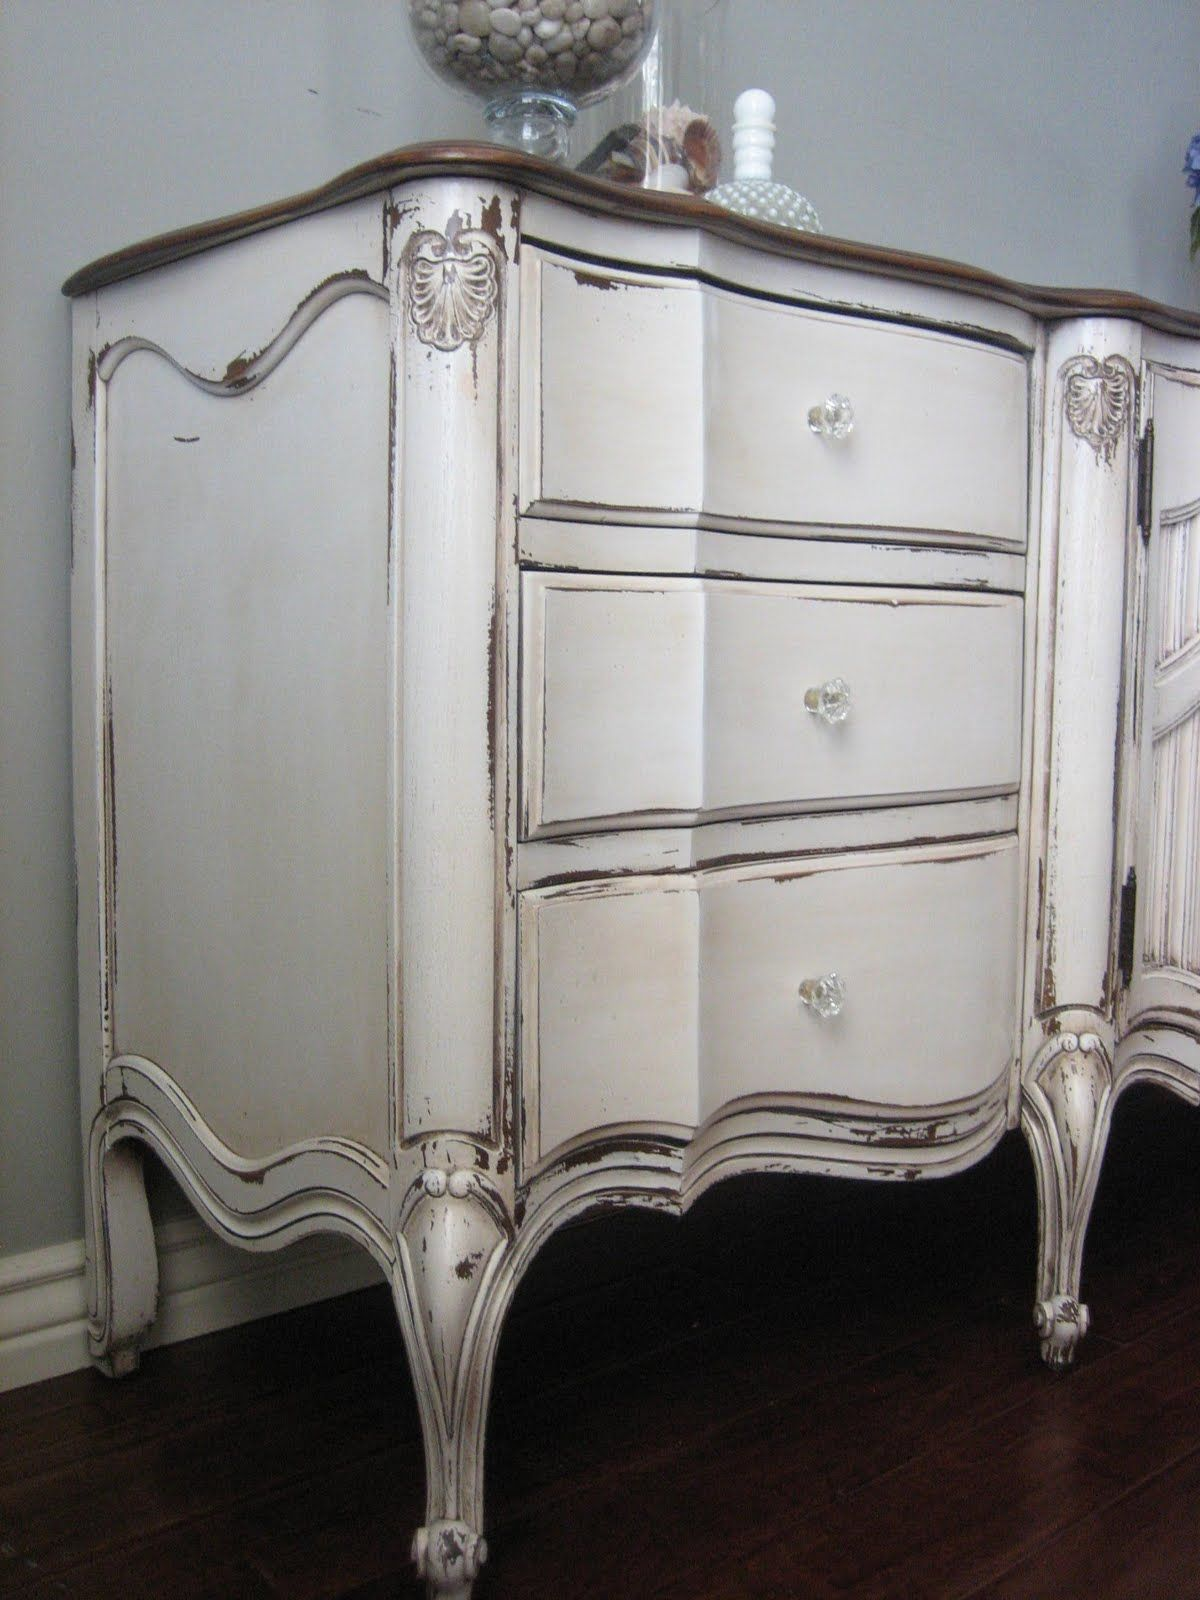 Sold Antiqued White French Provincial Dresser Chippy Weathered Distressed French Provincial Bedroom Furniture French Provincial Dresser Painted Furniture